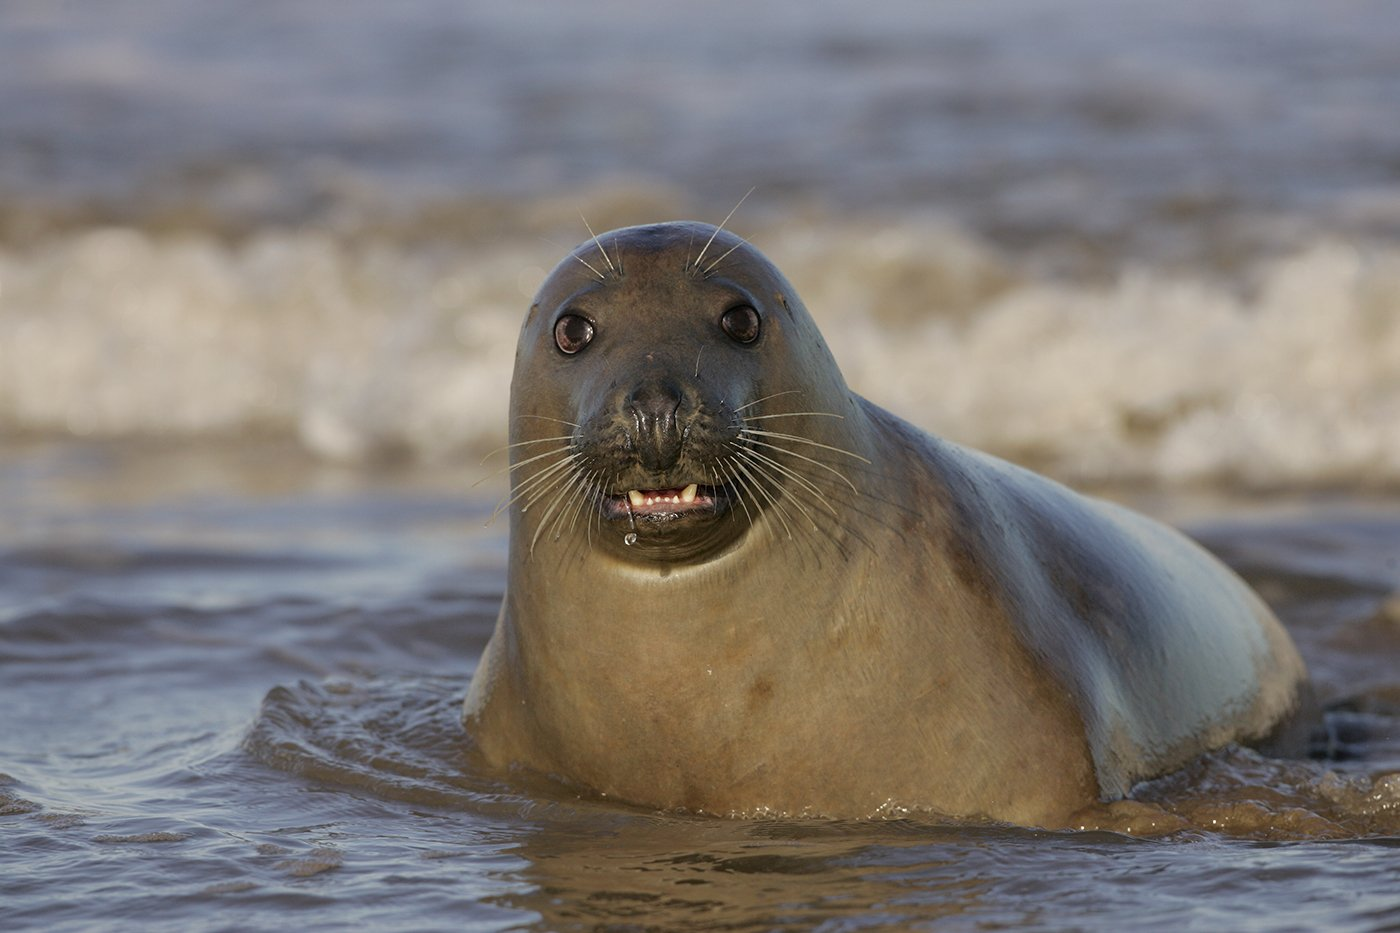 3rd Place: Seal (Andy Snape)